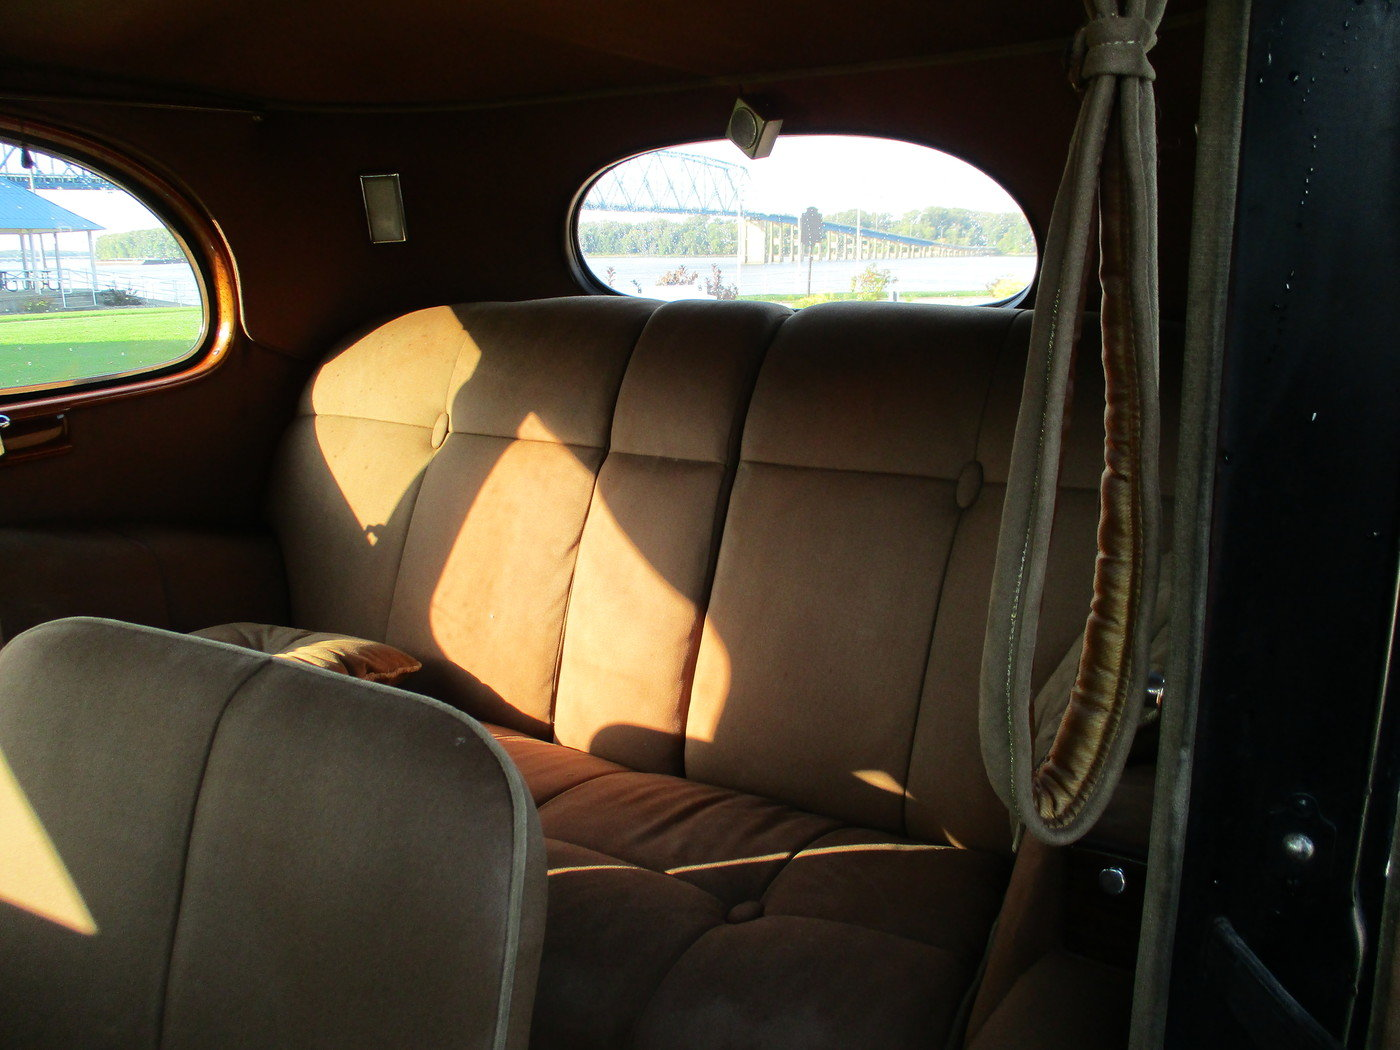 1939 Packard Model 1708 12 Cylinder Limousine For Sale (picture 10 of 12)